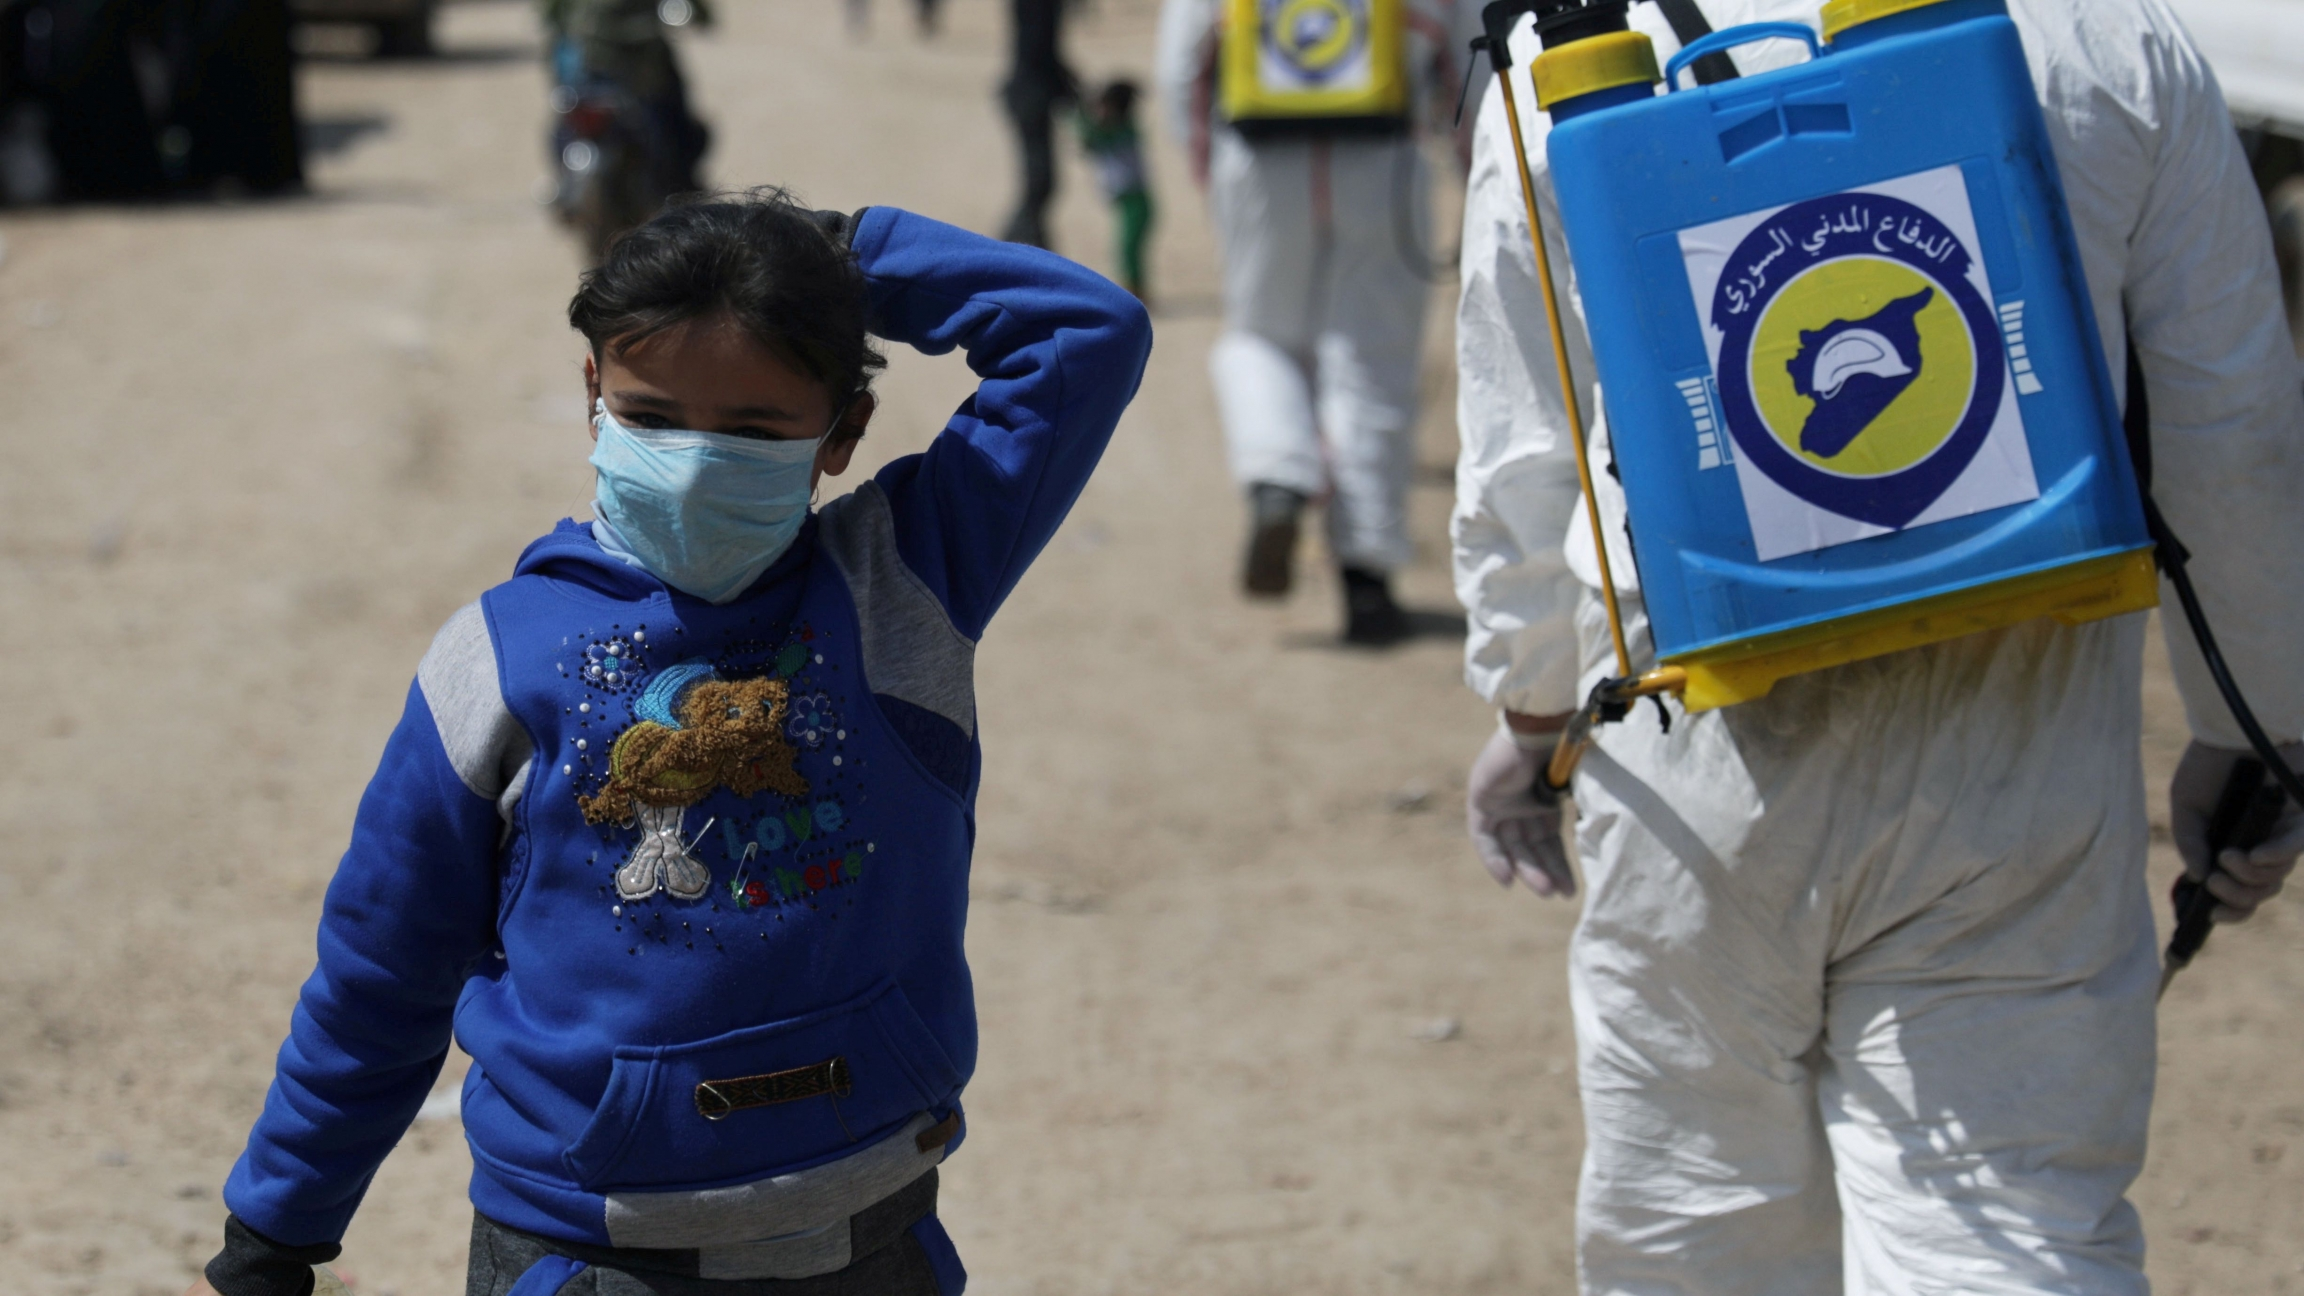 An internally displacedSyrian girl wears a face mask as members of theSyrian Civil defence sanitize the Bab al-Nour internally displaced persons camp, to prevent the spread of the coronavirus disease (COVID-19) in Azaz,Syria, March 26, 2020.